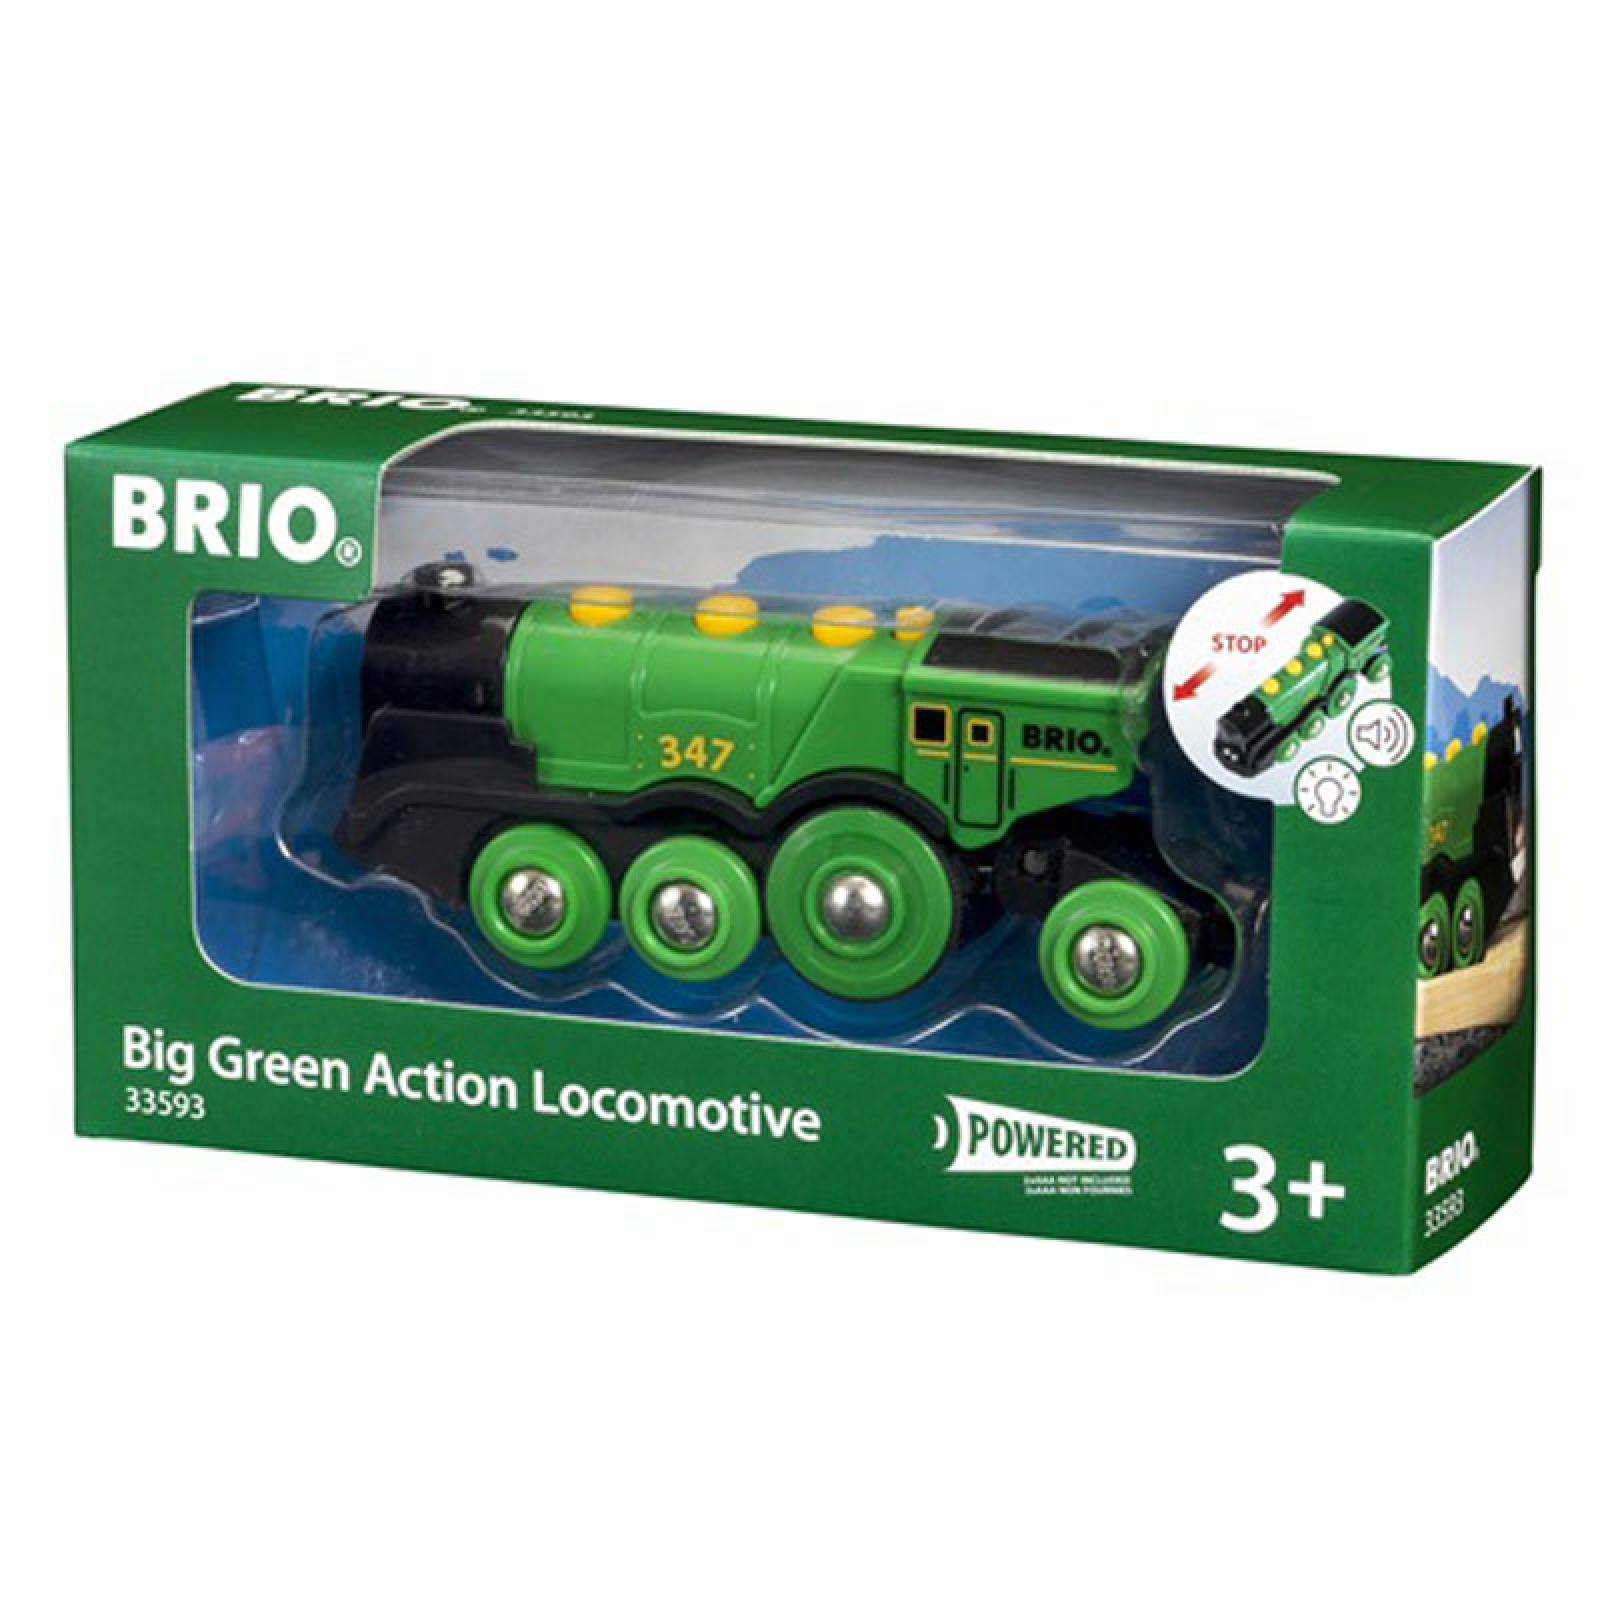 Big Green Action Locomotive Train BRIO Wooden Railway 3+ thumbnails